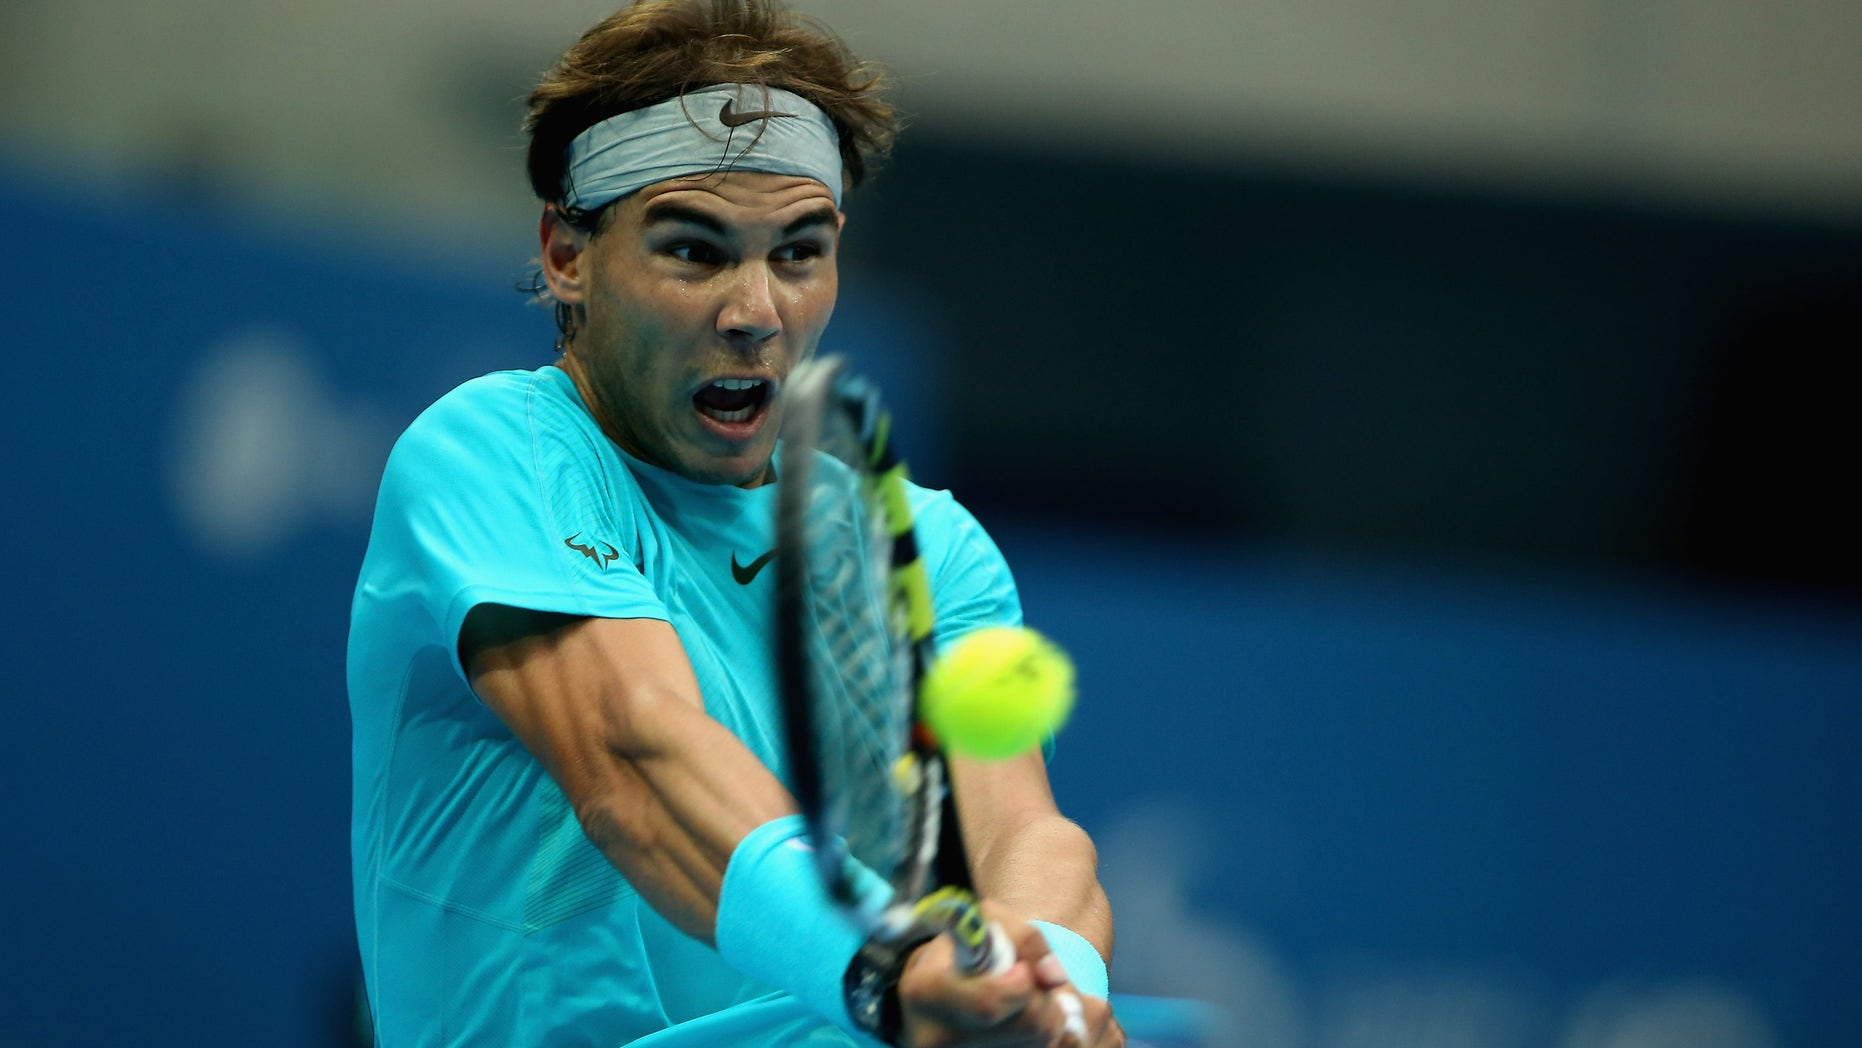 BEIJING, CHINA - OCTOBER 06:  Rafael Nadal of Spain returns a shot against Novak Djokovic of Serbia during the Men's Single Final  on night day of the China Open at the China National Tennis Center on October 6, 2013 in Beijing, China.  (Photo by Feng Li/Getty Images)